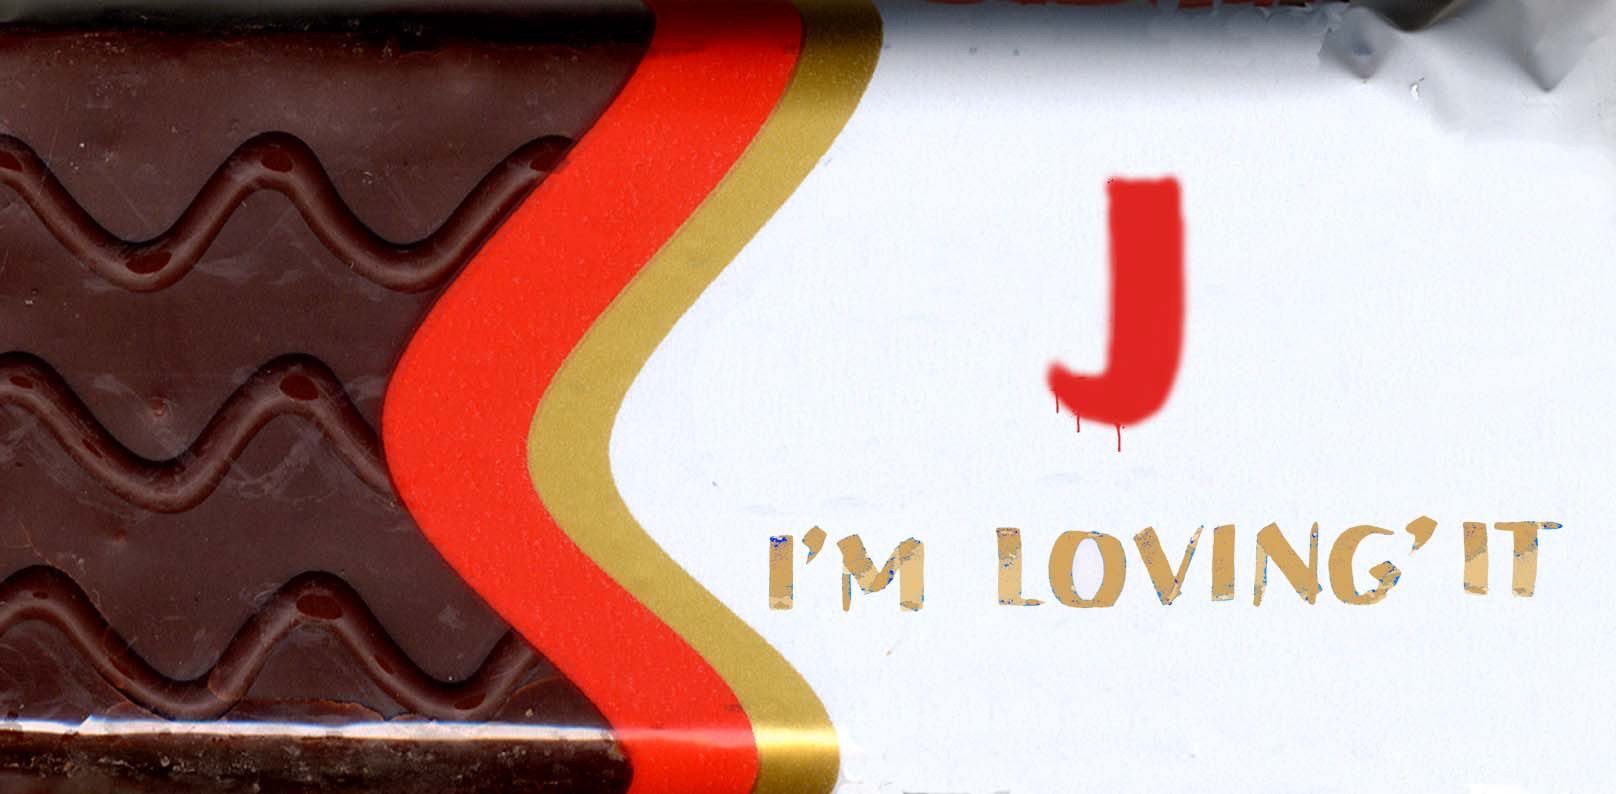 Michele Chiossi J, I'M LOVING IT, 2004 smalti, poliestere junk food dipinto Fiesta